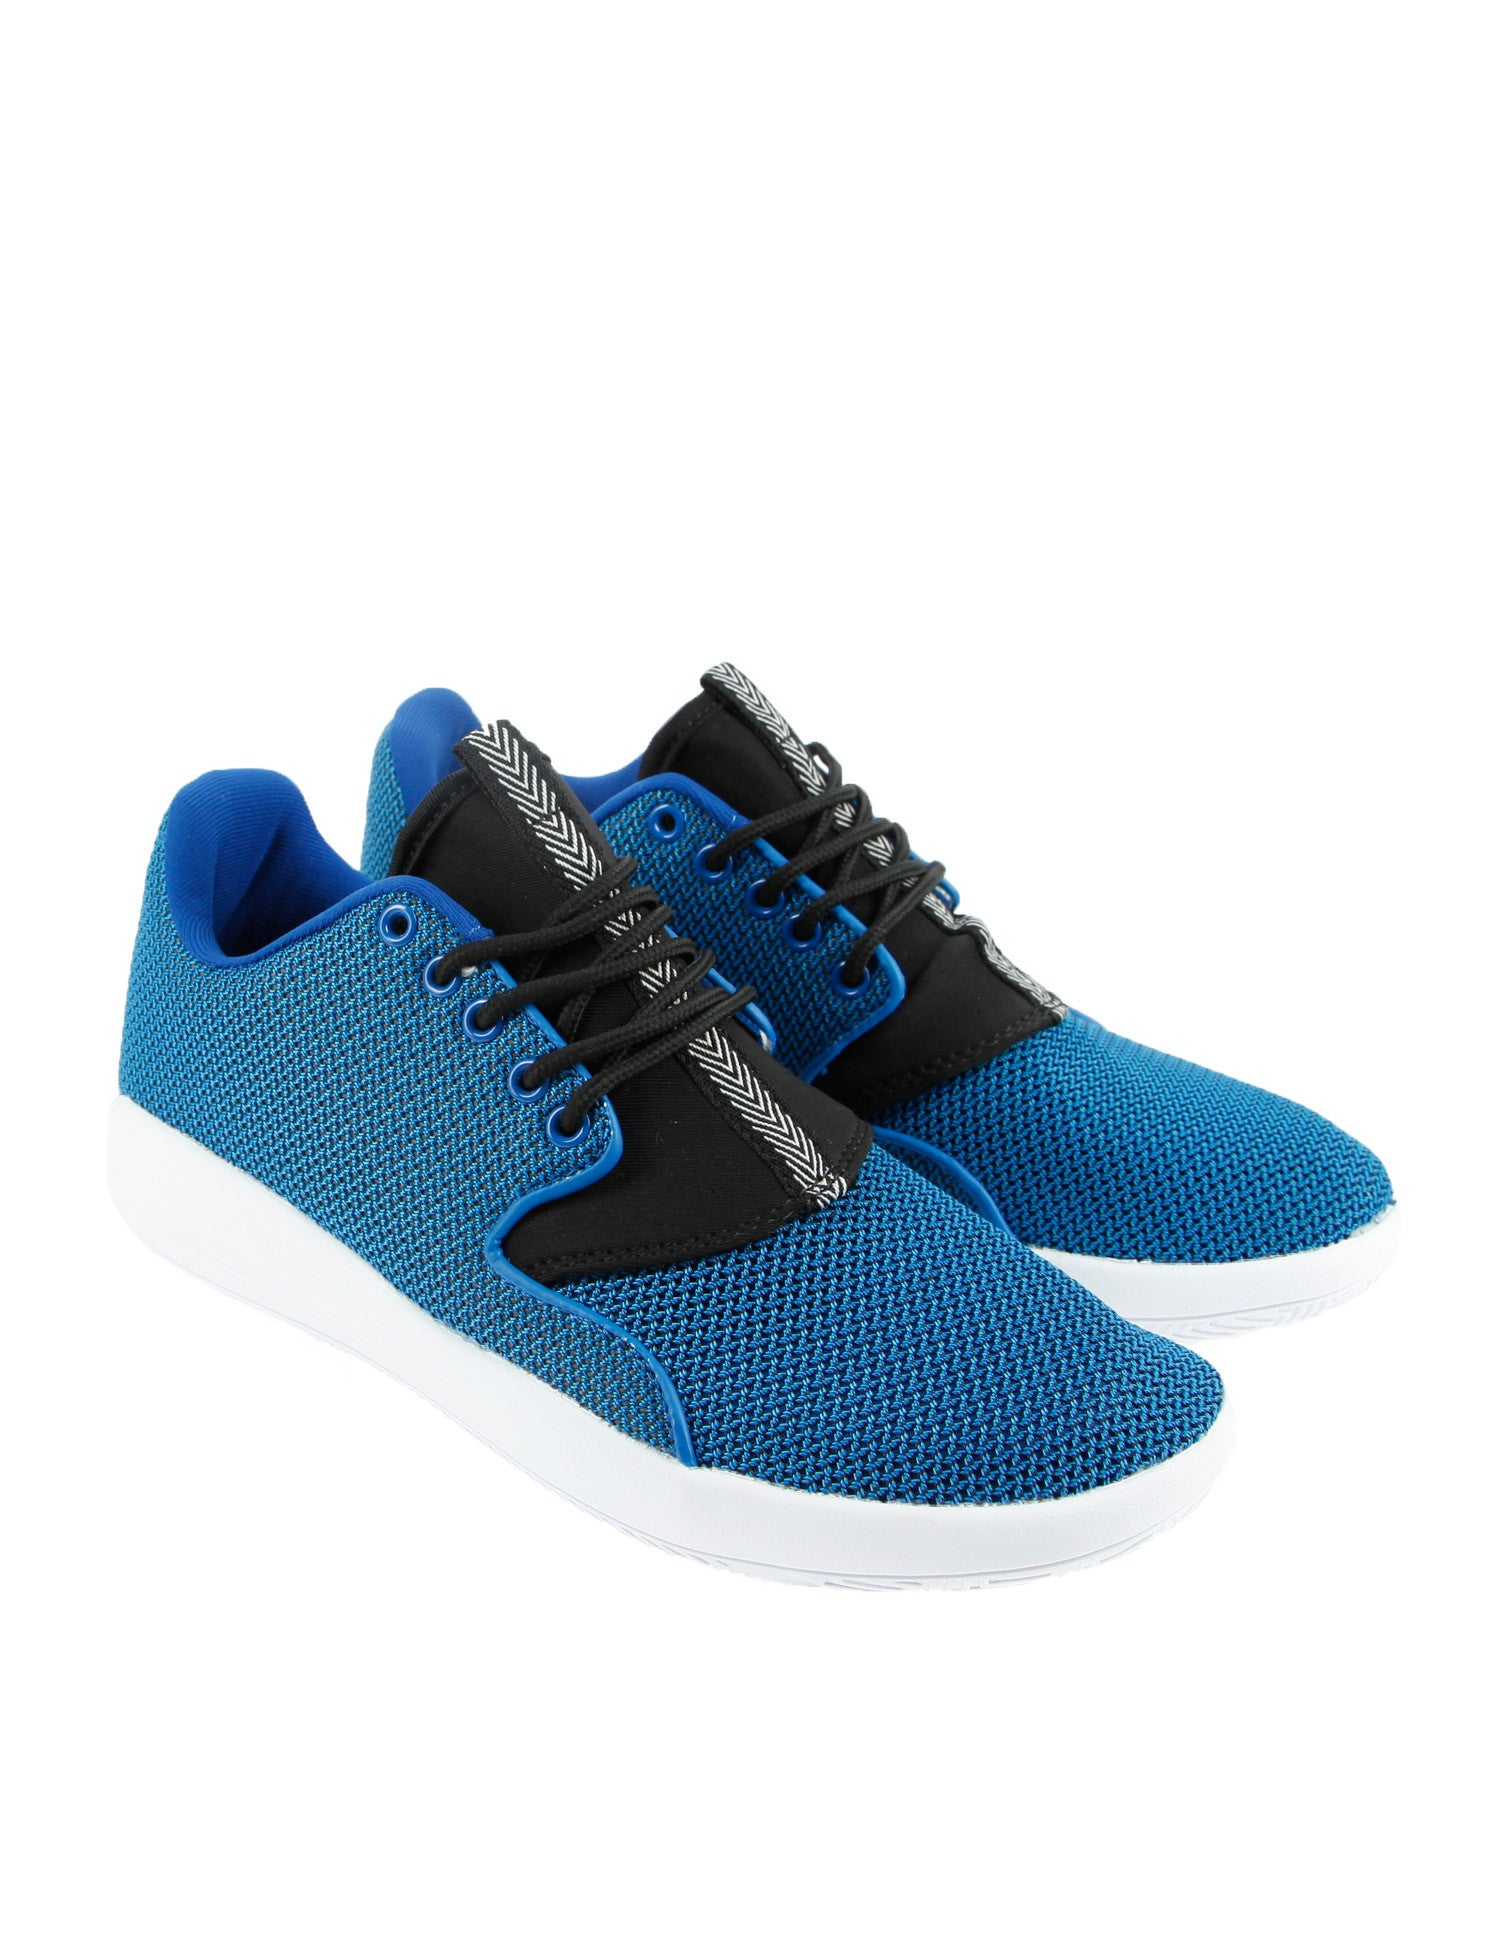 Cultz Shoes 250924 Royal Black